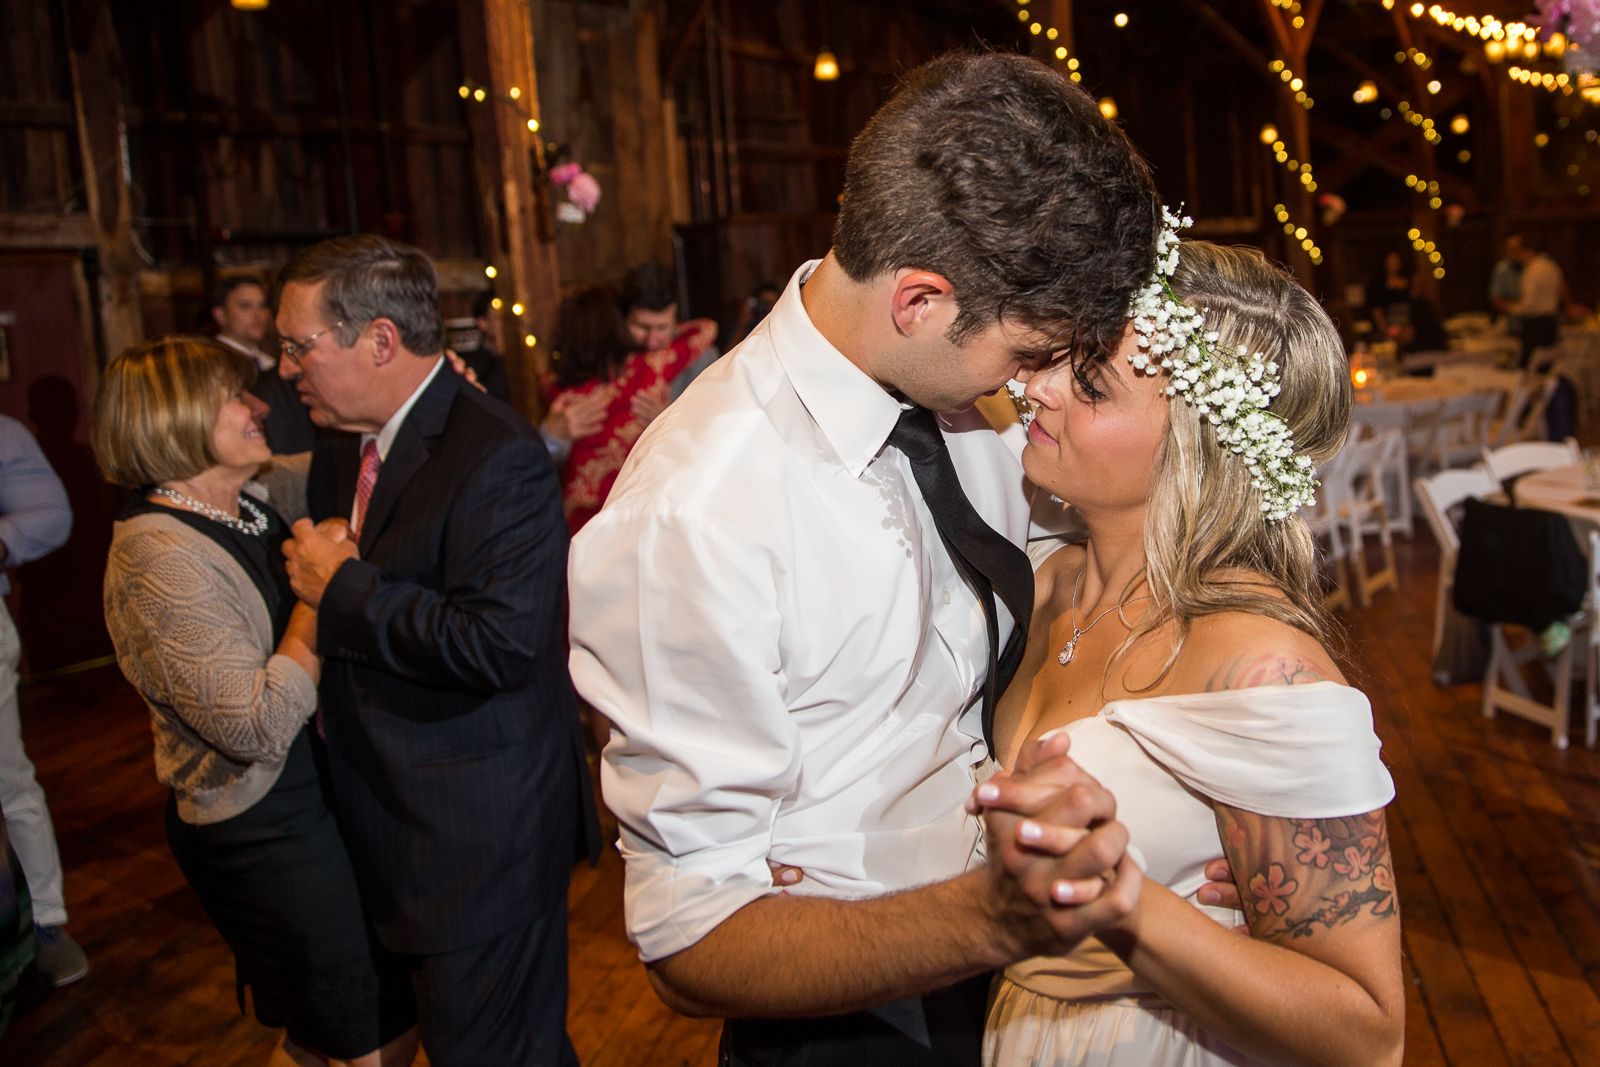 Four_Wings_Photography_Wedding_Red_Barn_at_Hampshire_College-63.jpg